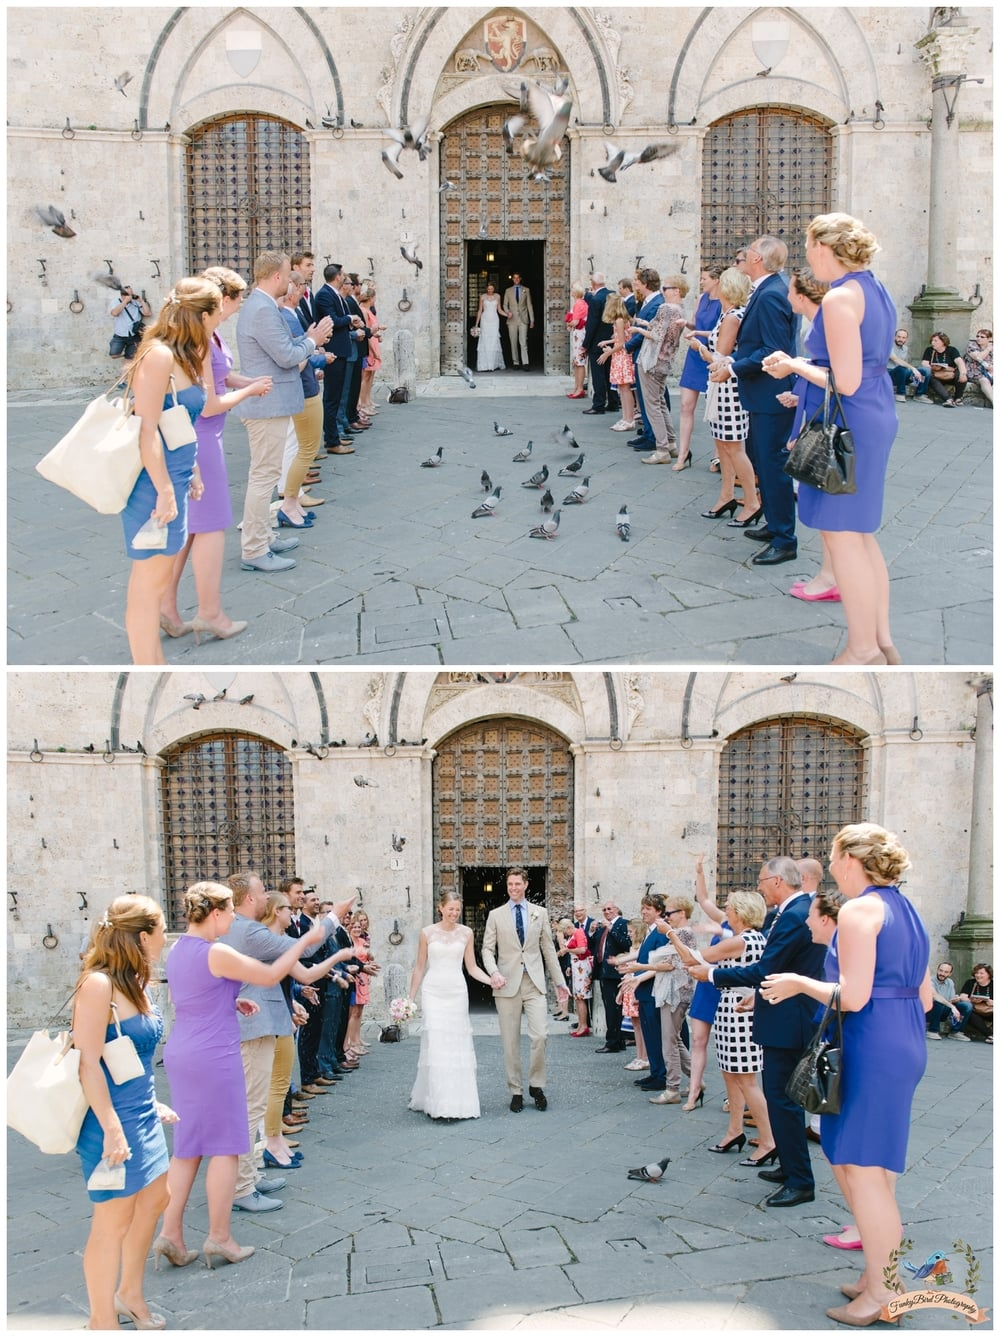 Wedding_Photographer_in_Tuscany_Italy_0017.jpg